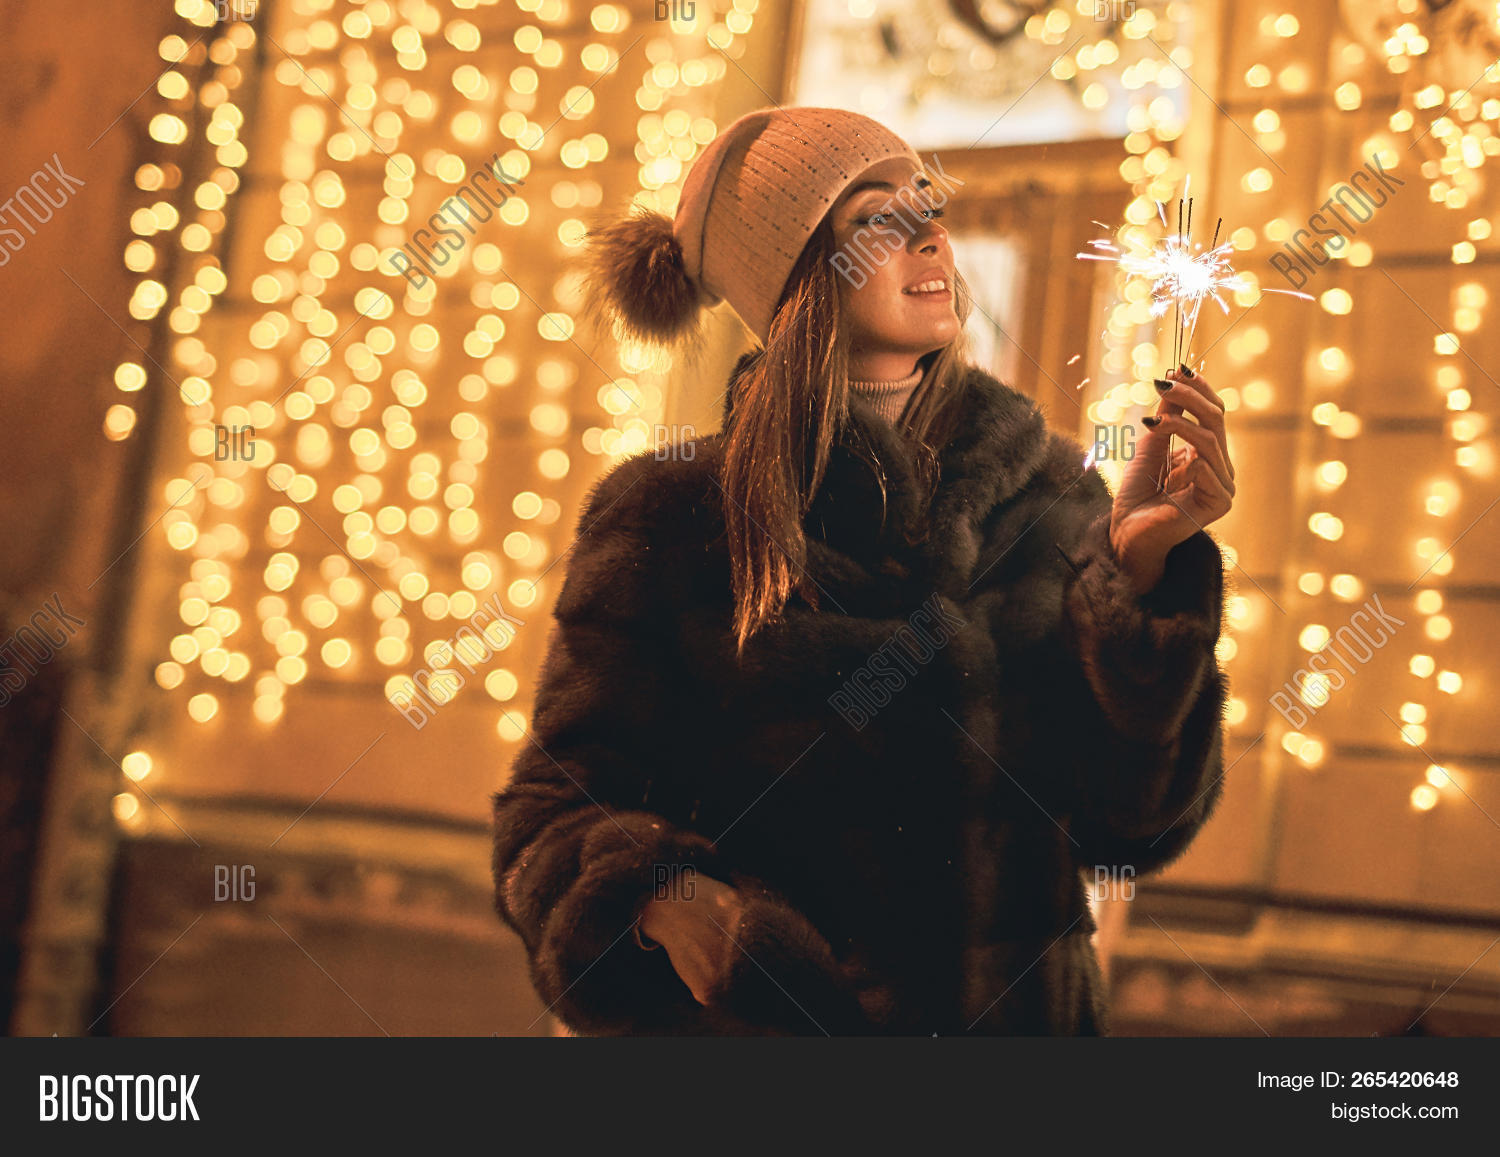 Christmas,Lviv,background,beanie,beautiful,bokeh,bright,cap,celebrating,celebration,cheerful,city,coat,colorful,cute,european,evening,fashion,festive,fur,garland,girl,gold,golden,happy,hat,holding,holiday,knit,lights,look,love,magic,new,night,outdoor,pom-pom,pompom,romantic,smiling,snow,sparkler,street,travel,winter,woman,xmas,year,yellow,young